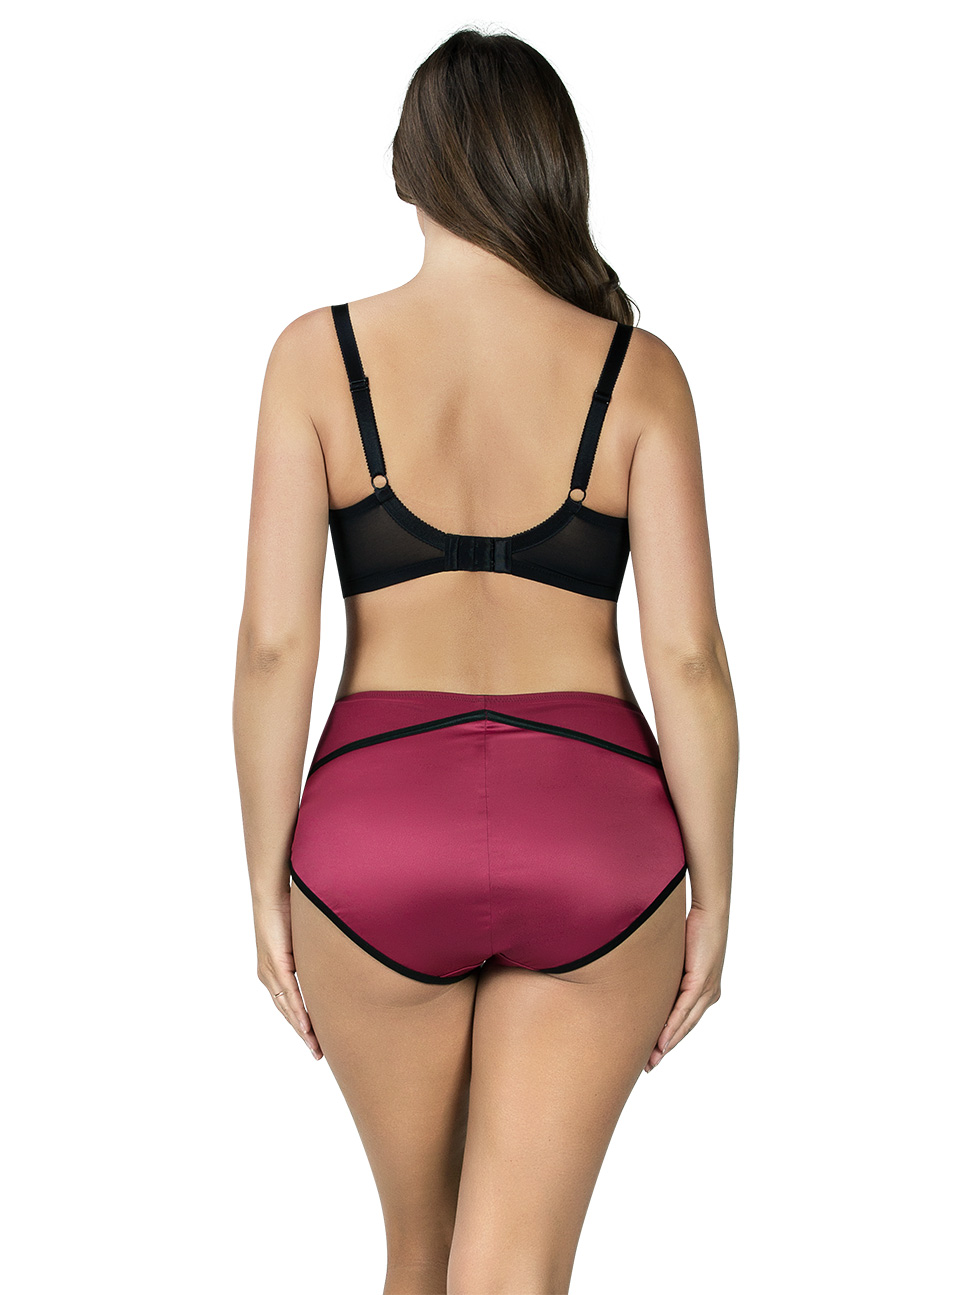 PARFAIT Charlotte PaddedBra6901 HighwaistBrief6917 RioRed Back - Charlotte Highwaist Brief Rio Red 6917